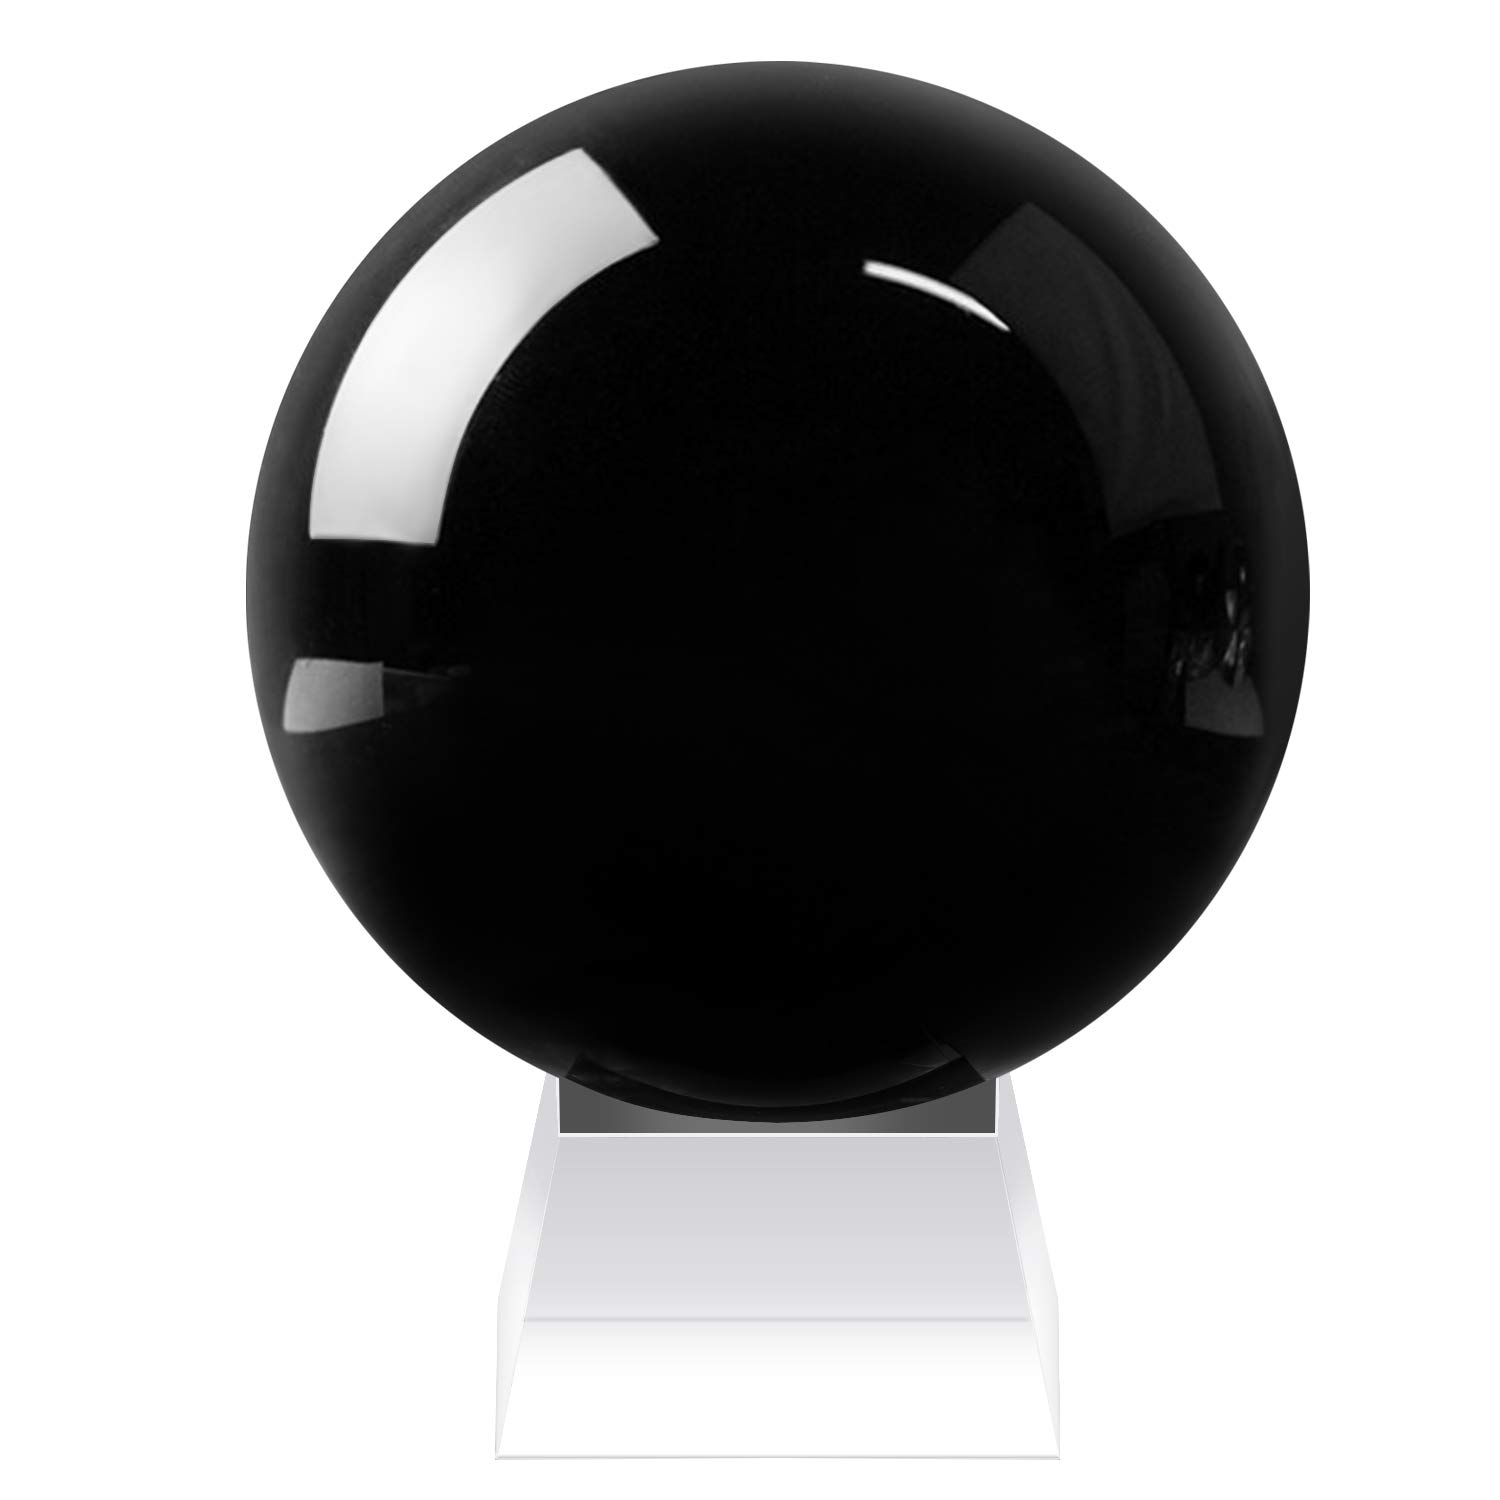 Neewer 110mm/ 4.33inches Black Crystal Ball Globe with a Crystal Stand for Feng Shui/Divination or Wedding/Home/Office Decoration by Neewer